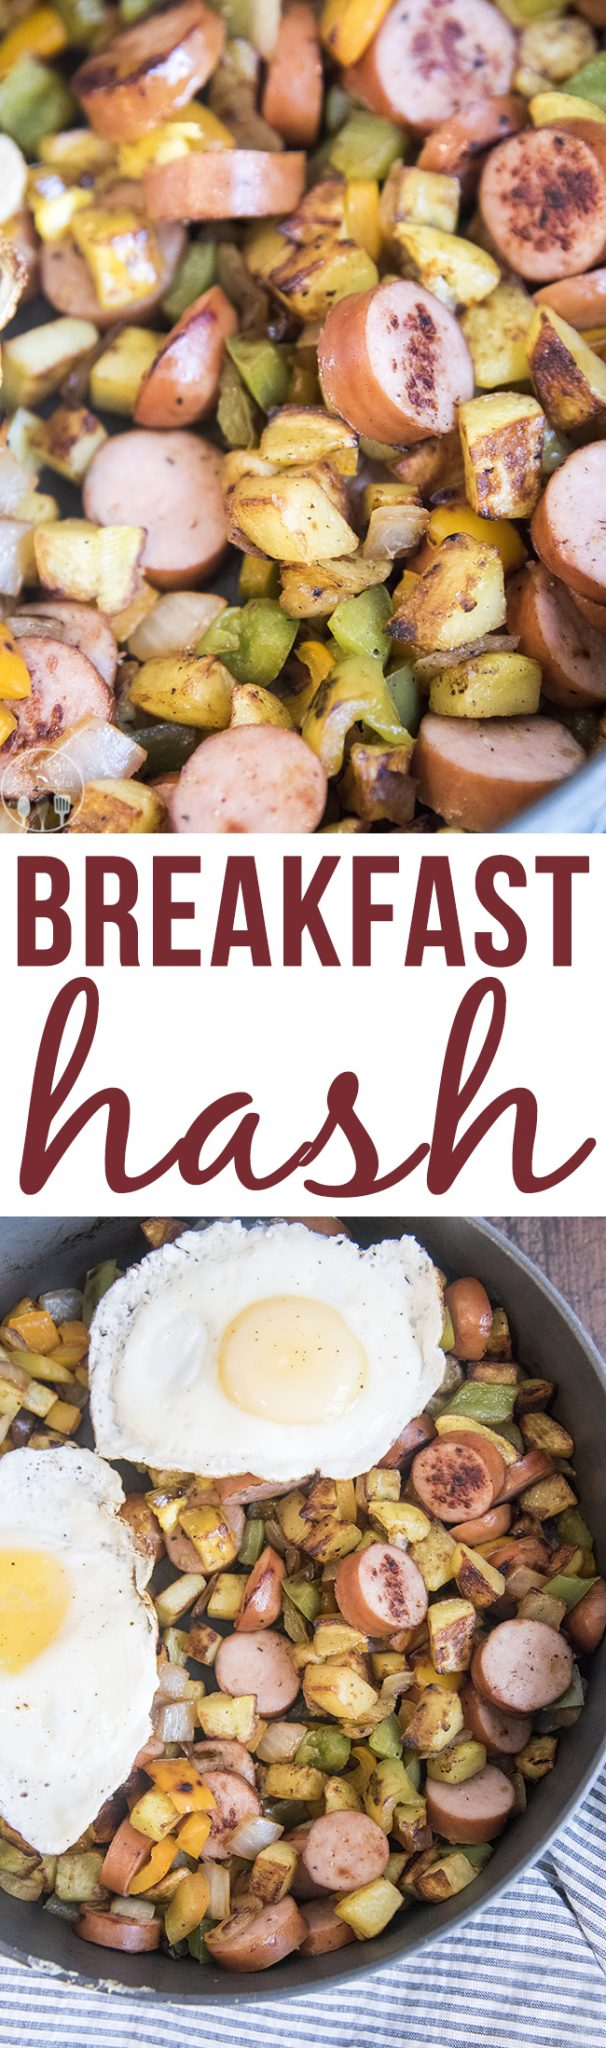 reakfast hash - this This is a delicious combination of potatoes, peppers, onions, and sausage. Great for breakfast or dinner served with a fried egg on top!